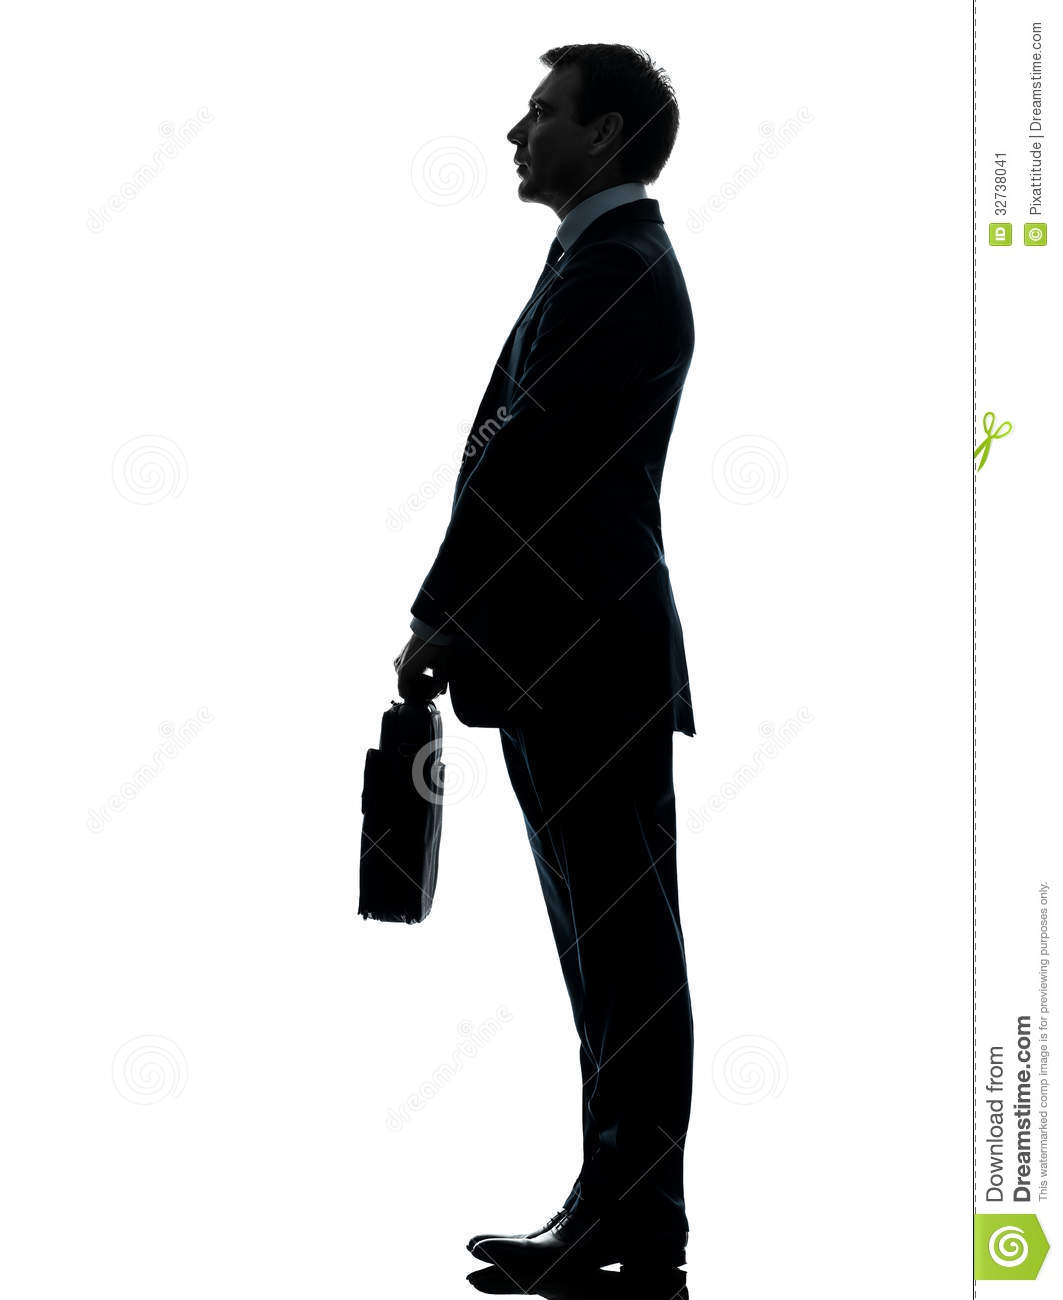 man standing silhouette clipart panda free clipart images